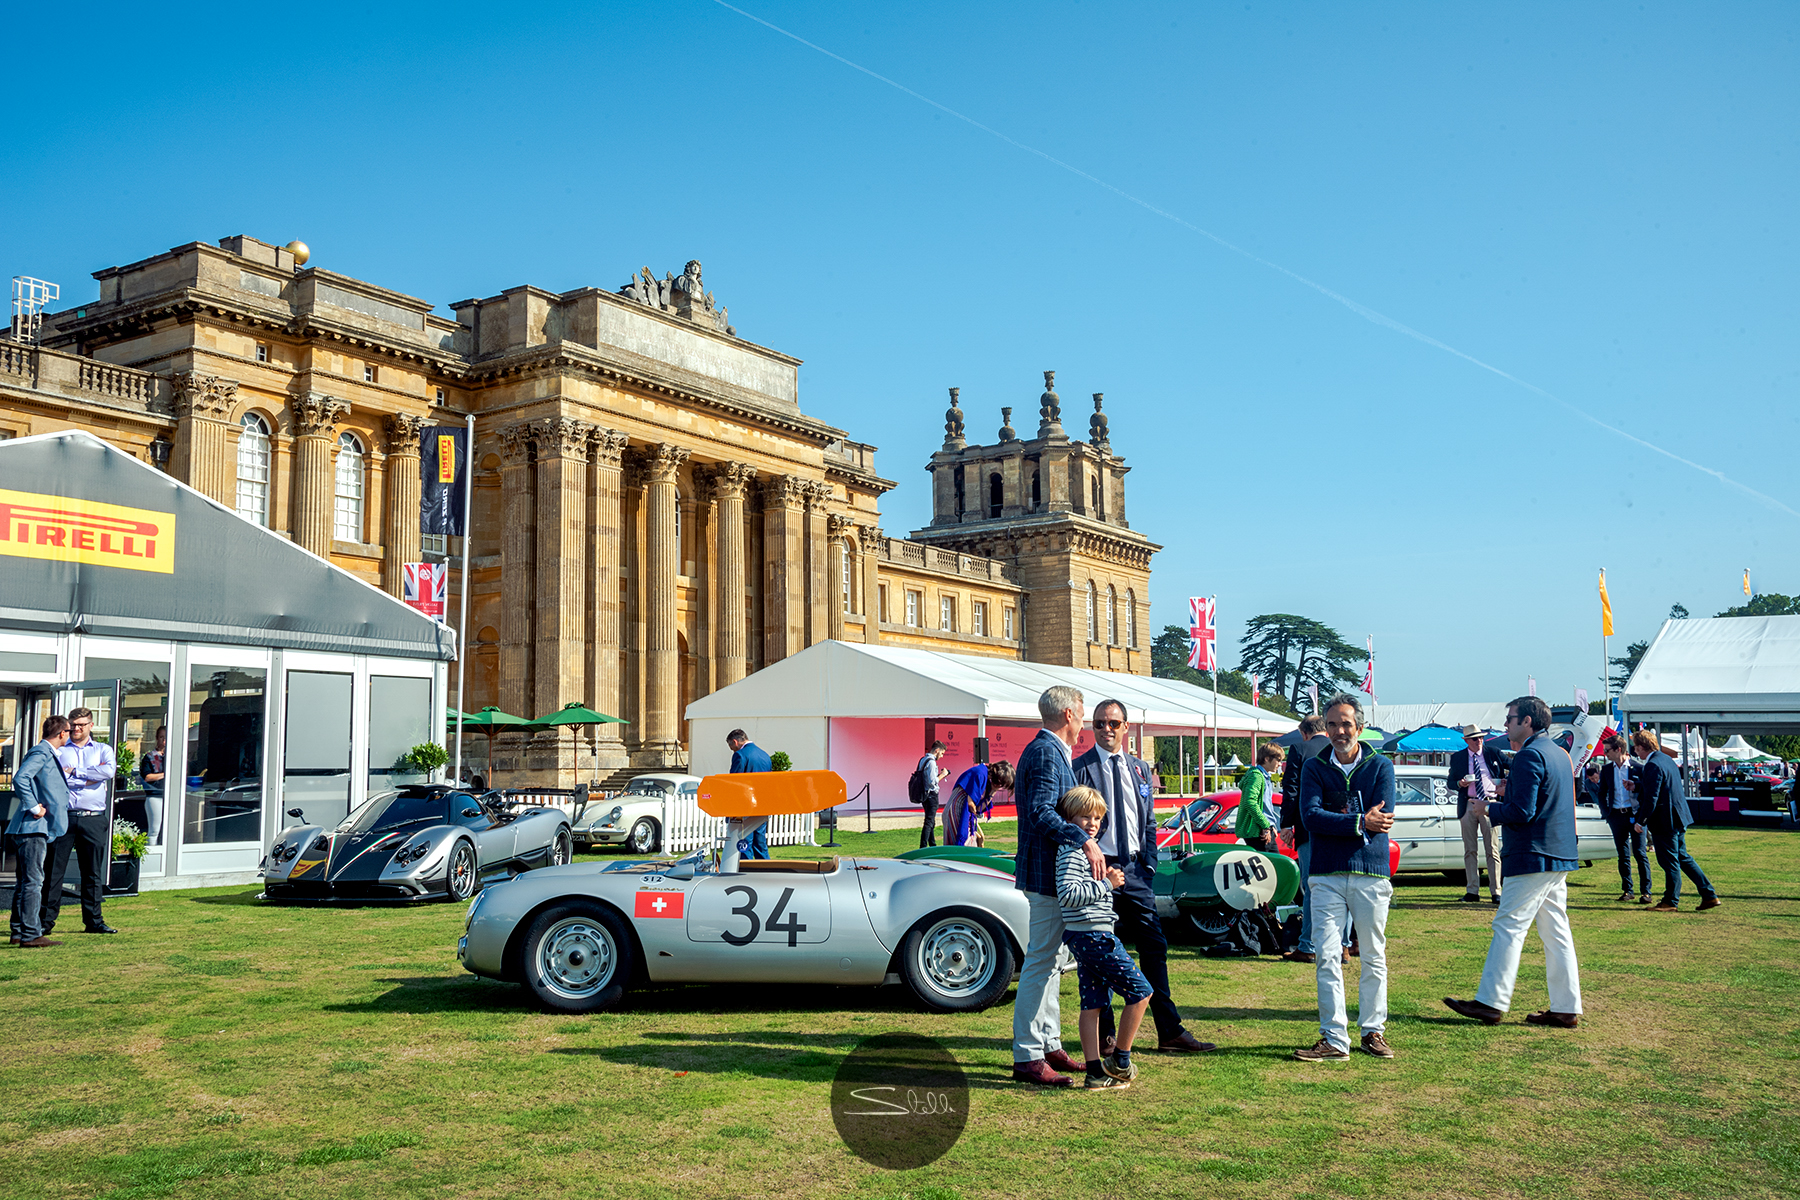 Stella Scordellis Salon Prive 2018 16 Watermarked.jpg